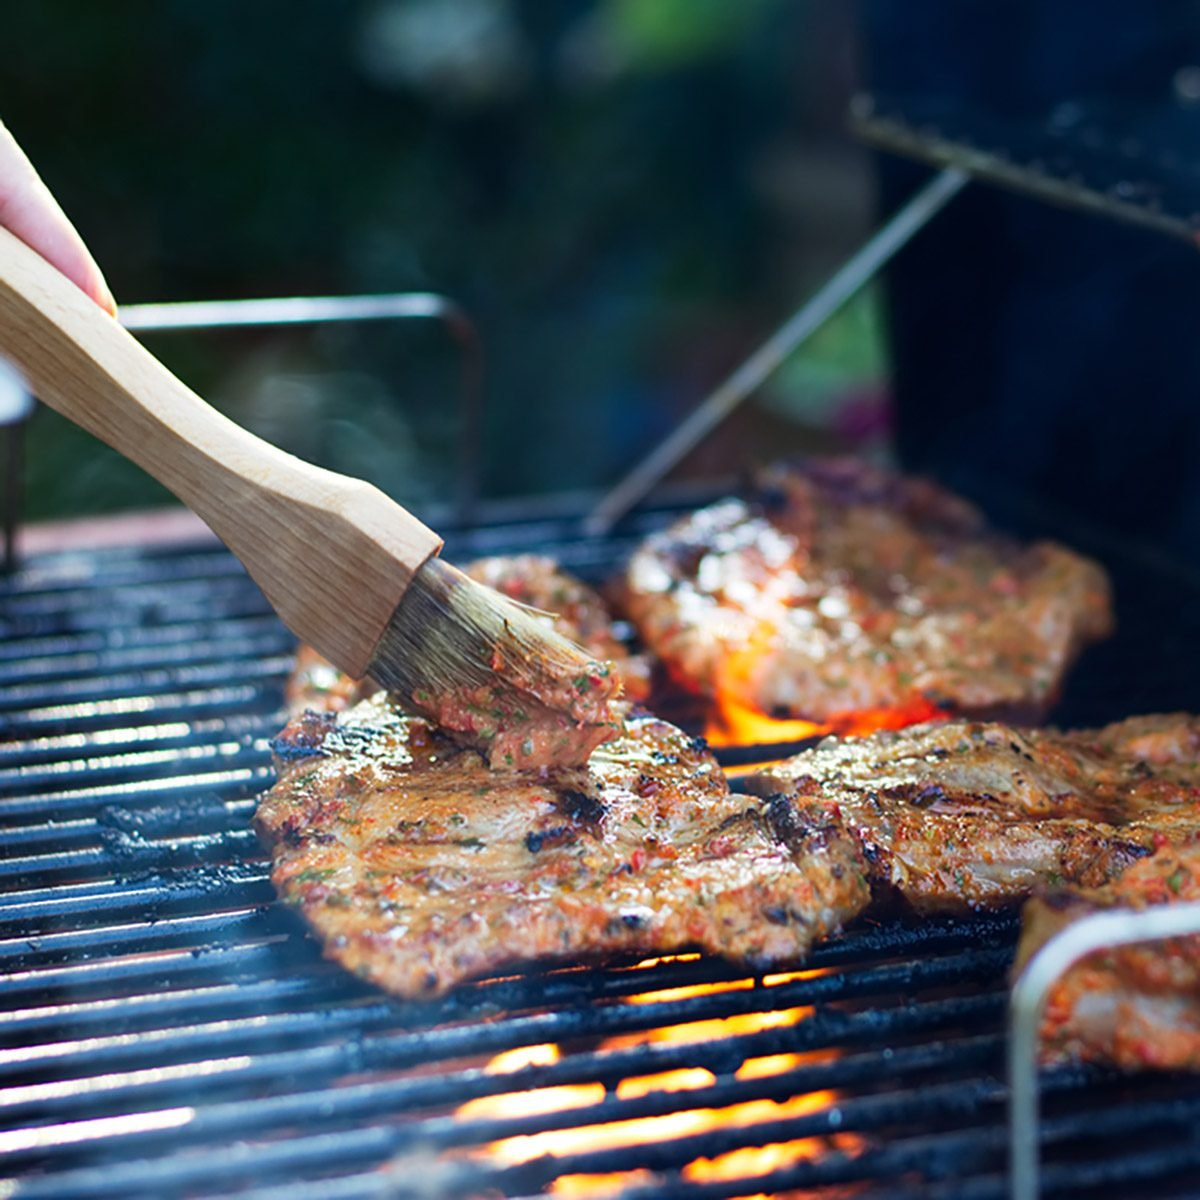 Charcoal Vs Gas Grills Here S What You Need To Know